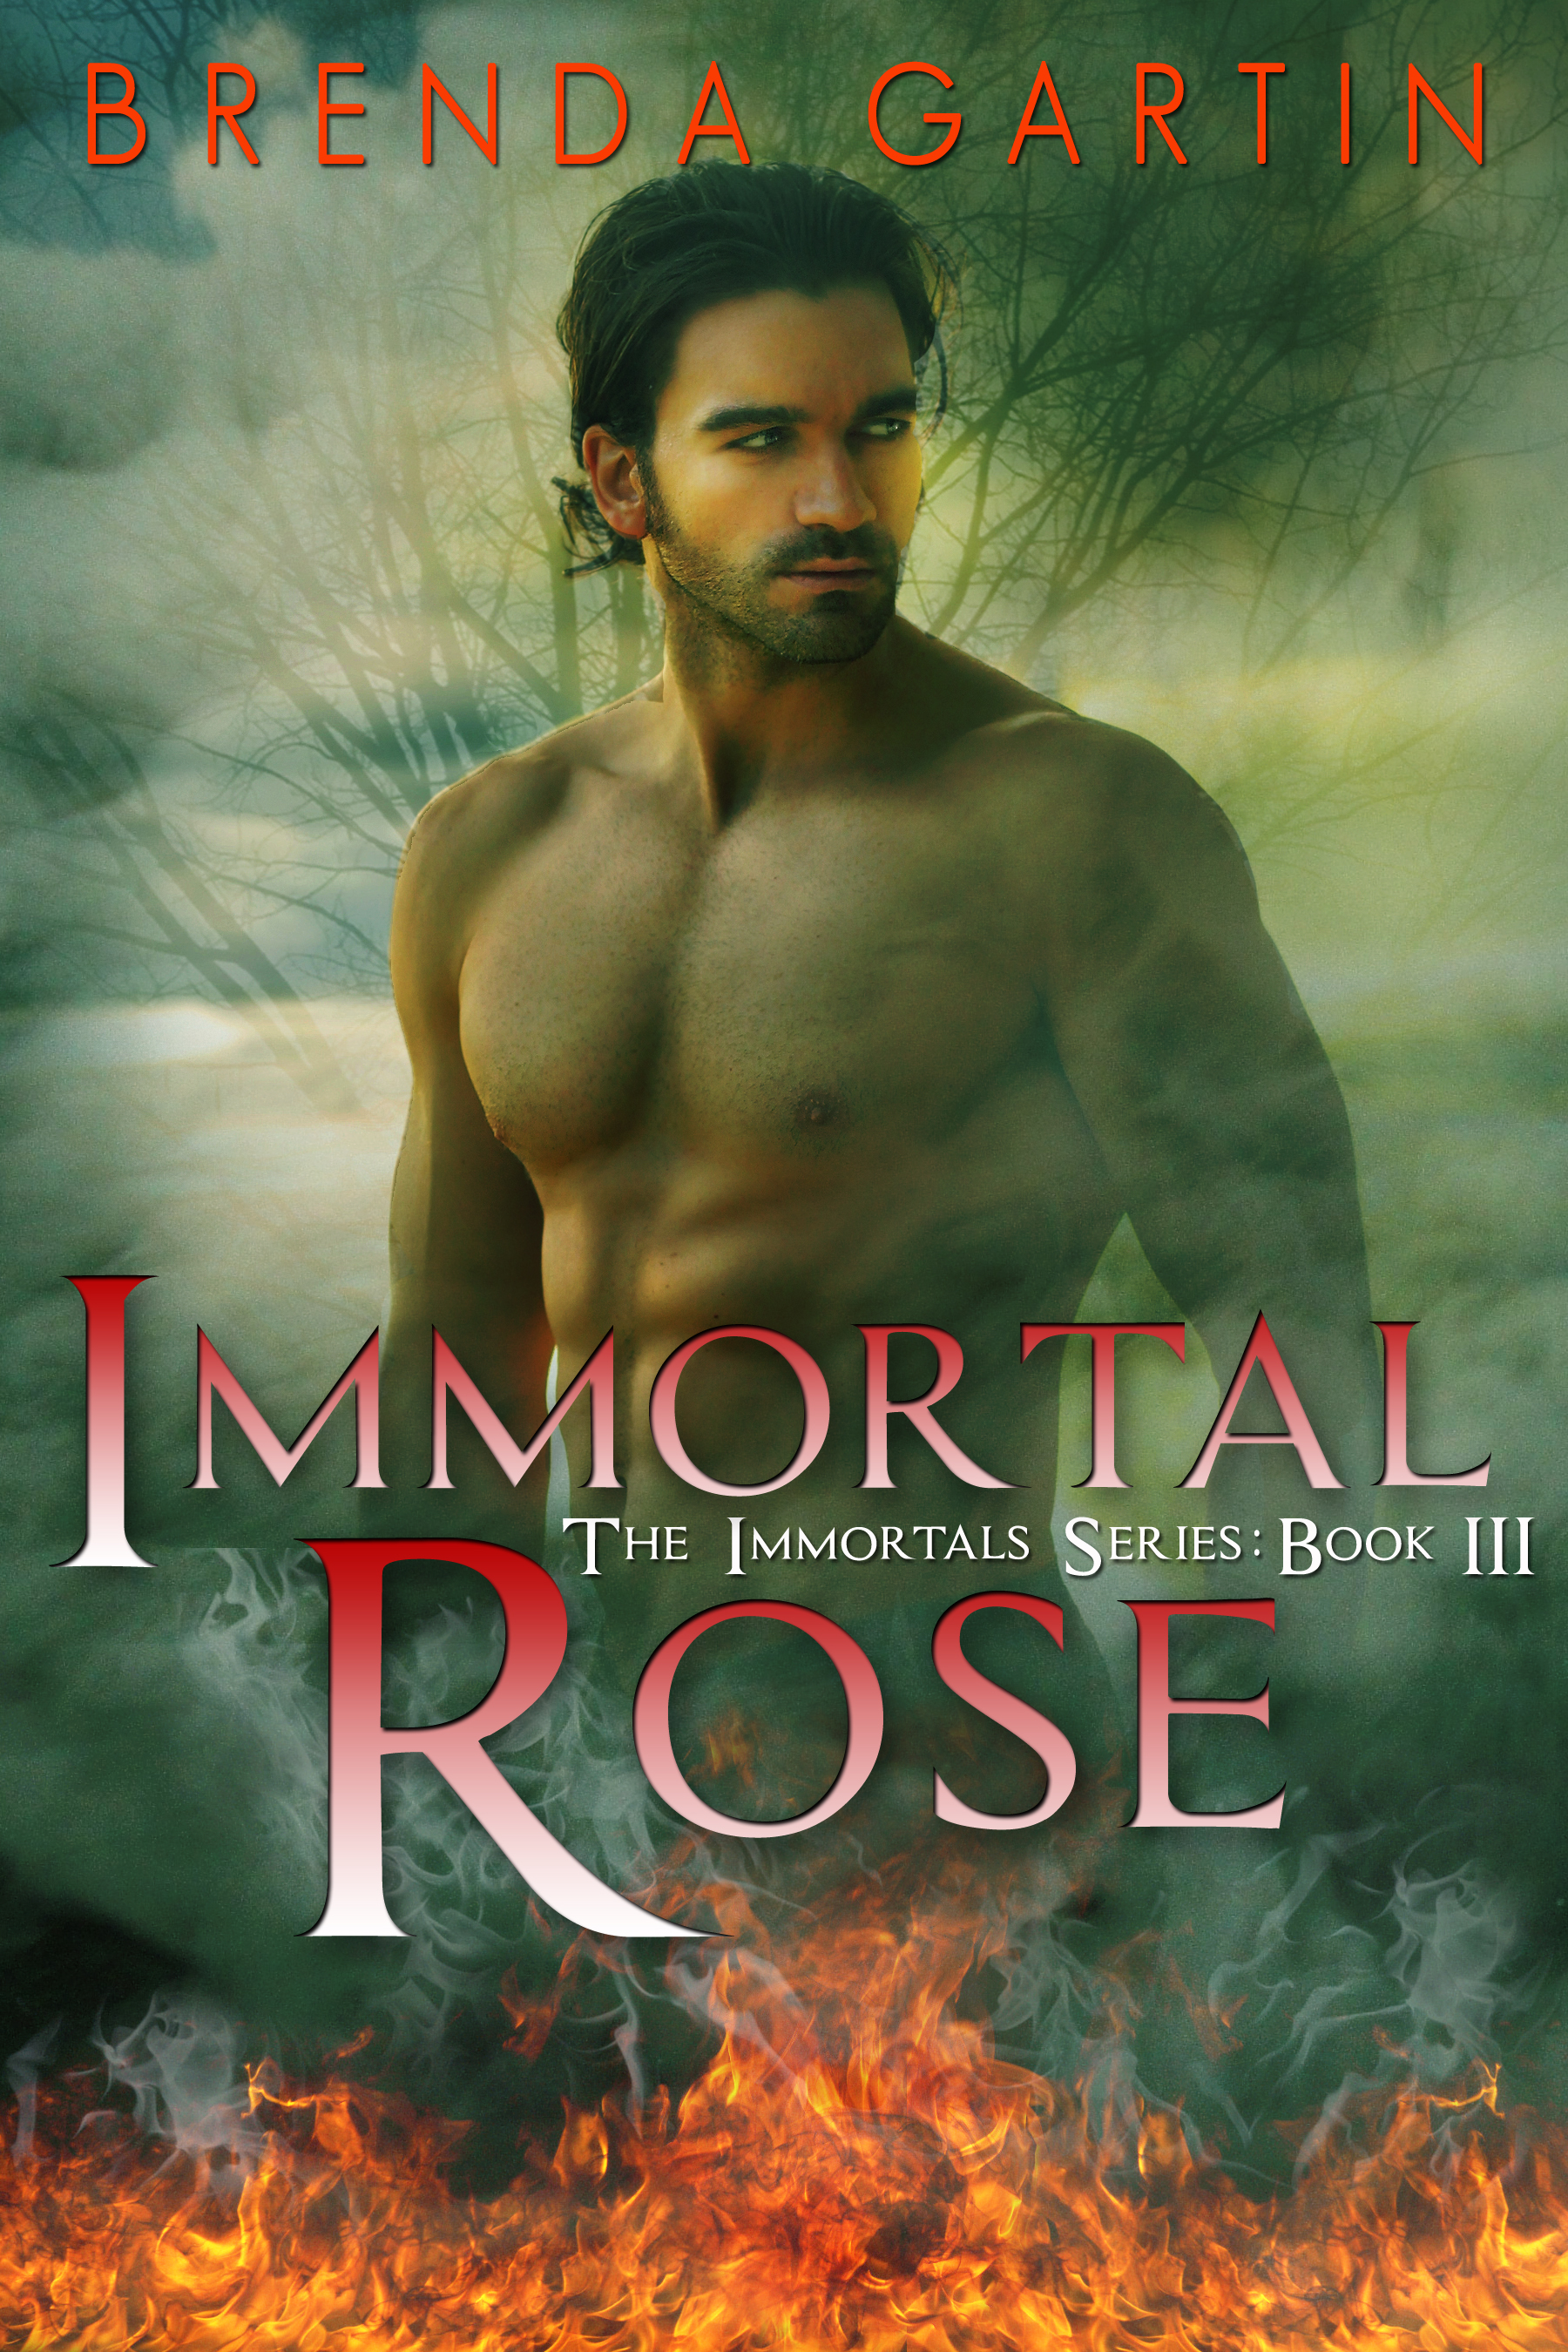 This Winter - Immortal Rose.